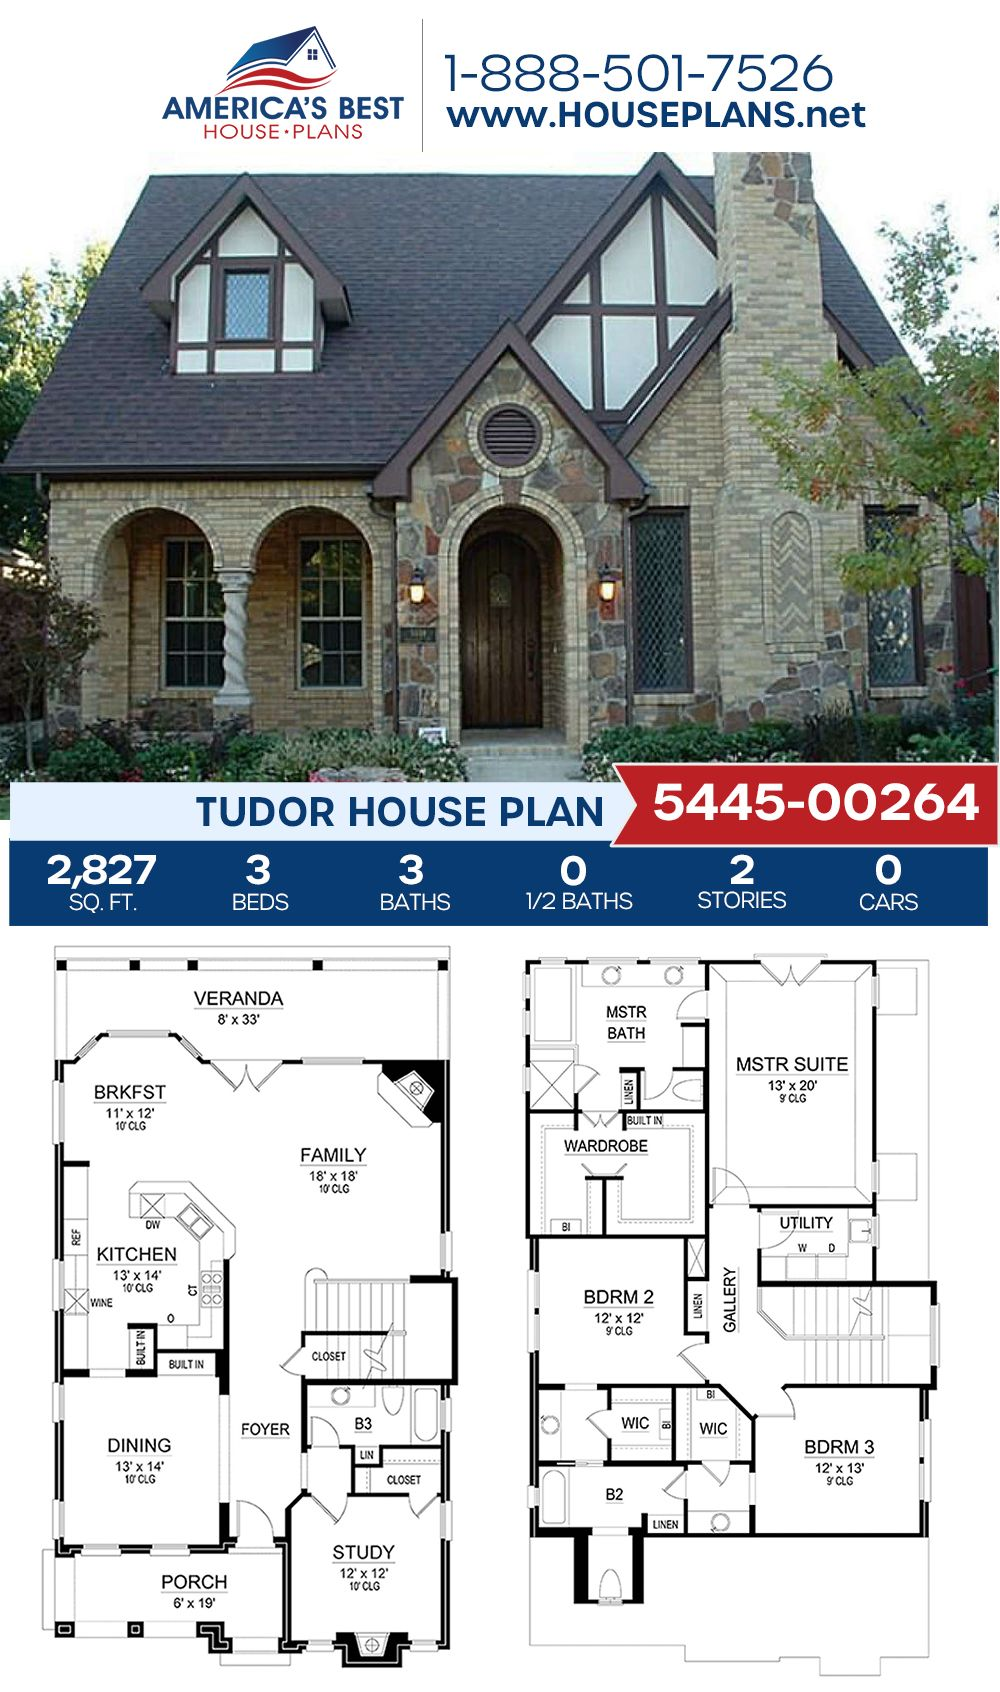 House Plan 5445 00264 Tudor Plan 2 827 Square Feet 3 Bedrooms 3 Bathrooms In 2021 Sims House Design Dream House Plans New House Plans